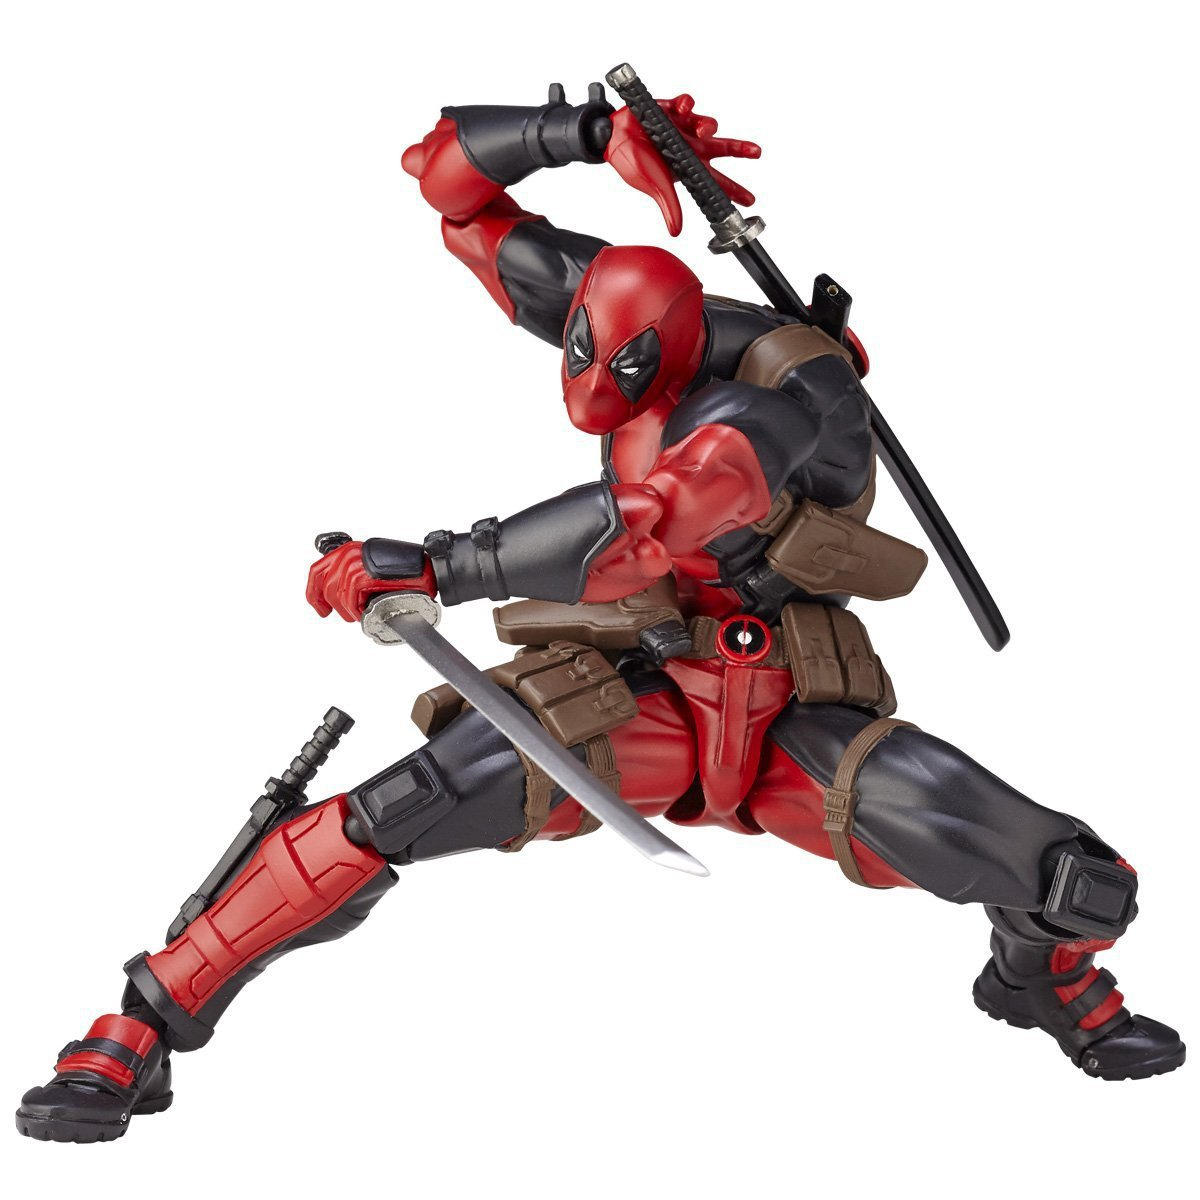 QICSYXJ Birthday Gift Superhero Action Collection 15cm Deadpool Movable Model Anime X Men Toy Figure Collection<br>